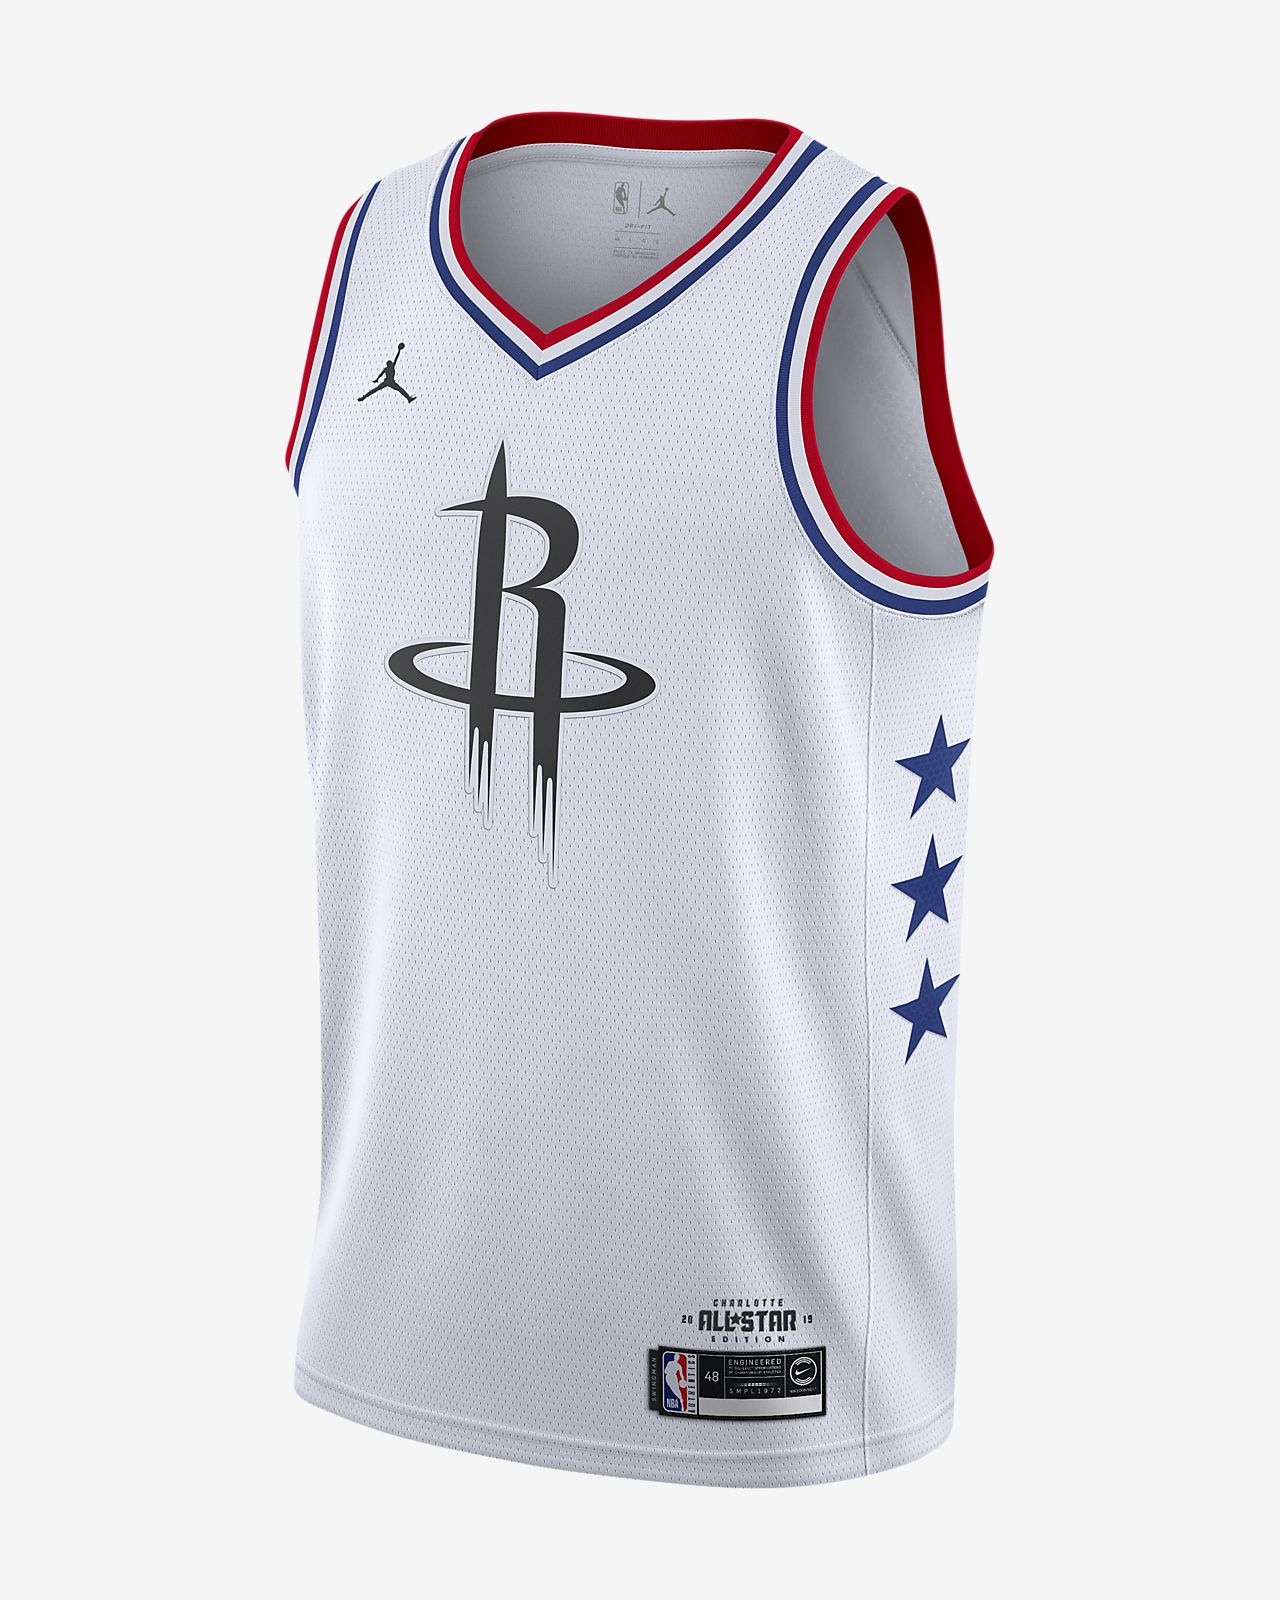 c9974c5b1 Men s Jordan NBA Connected Jersey. James Harden All-Star Edition Swingman